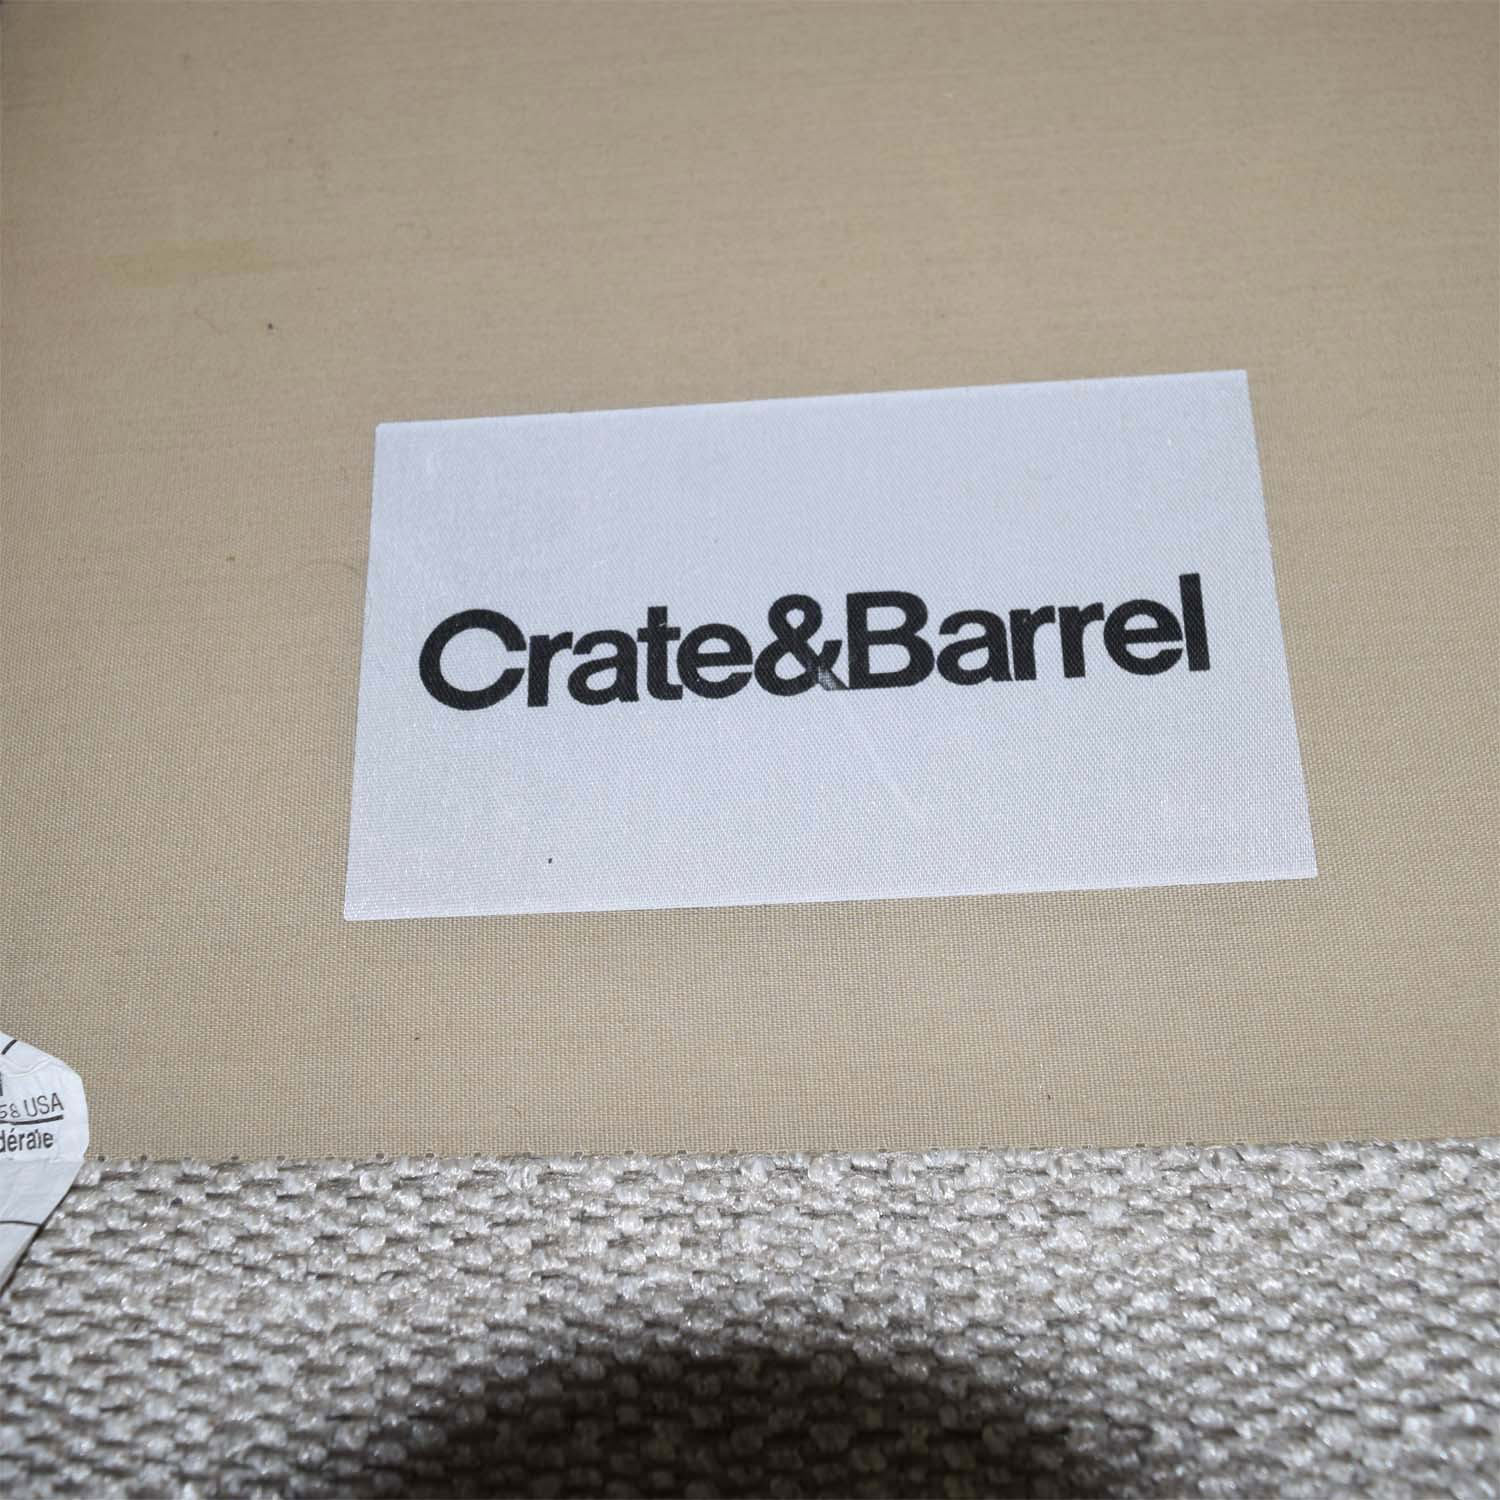 Crate & Barrel Crate & Barrel Lounge II Cement Grey Two Cushion Sofa dimensions